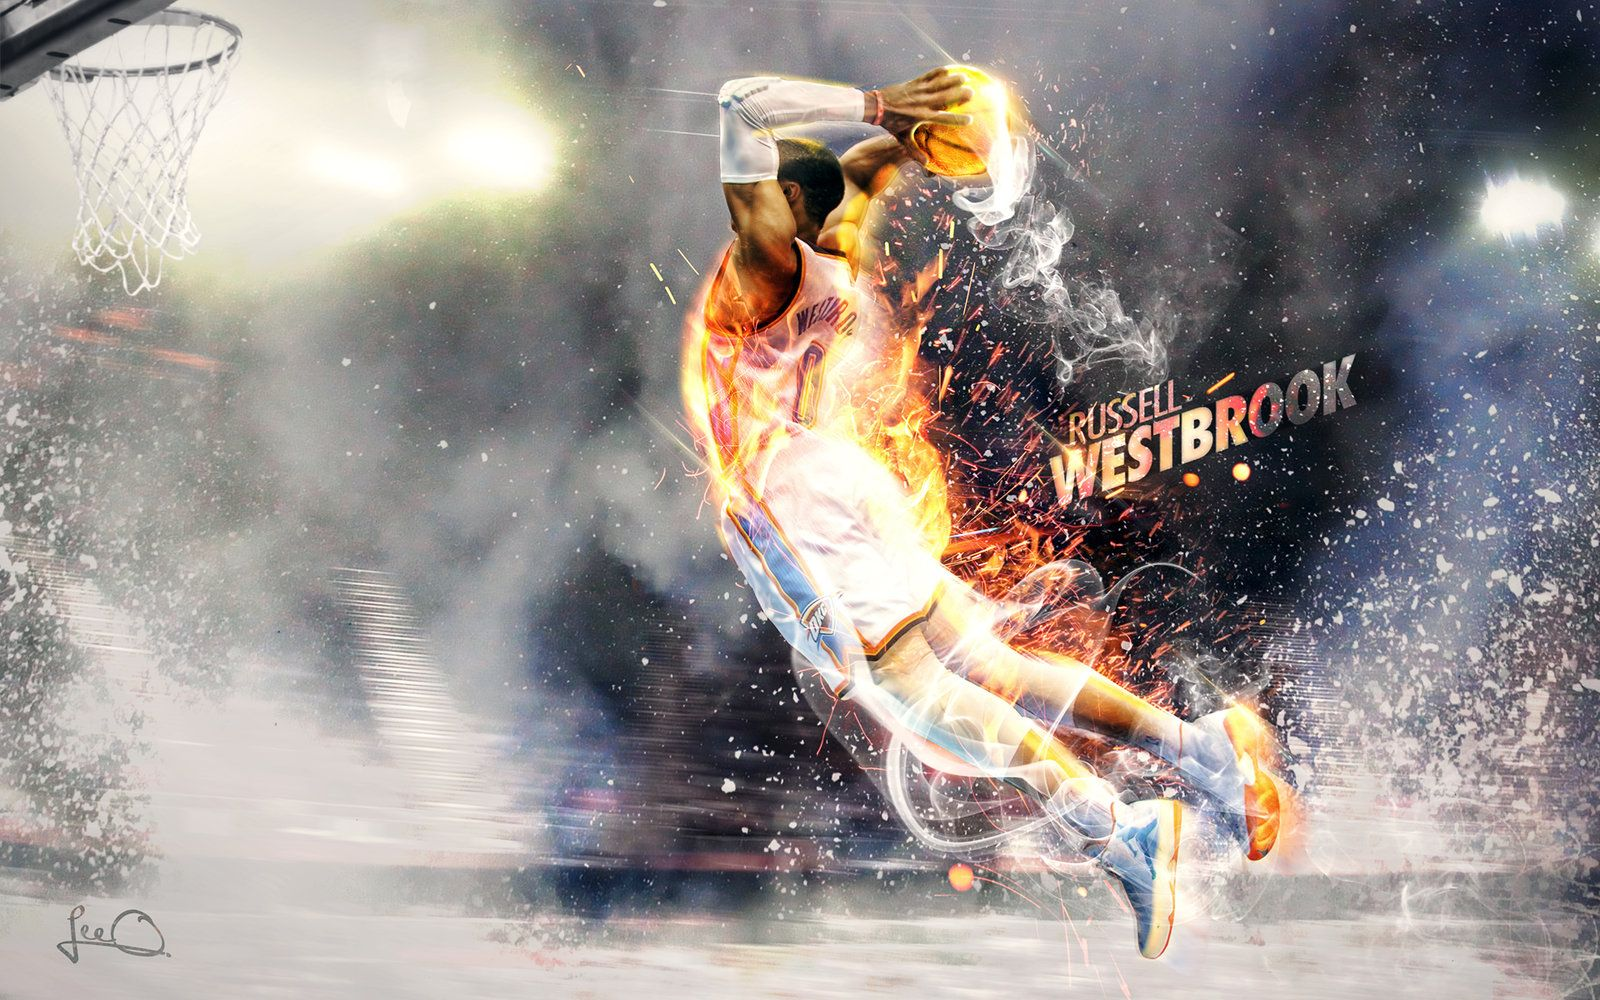 russell westbrook art Russell Westbrook Wallpaper 2.0 by